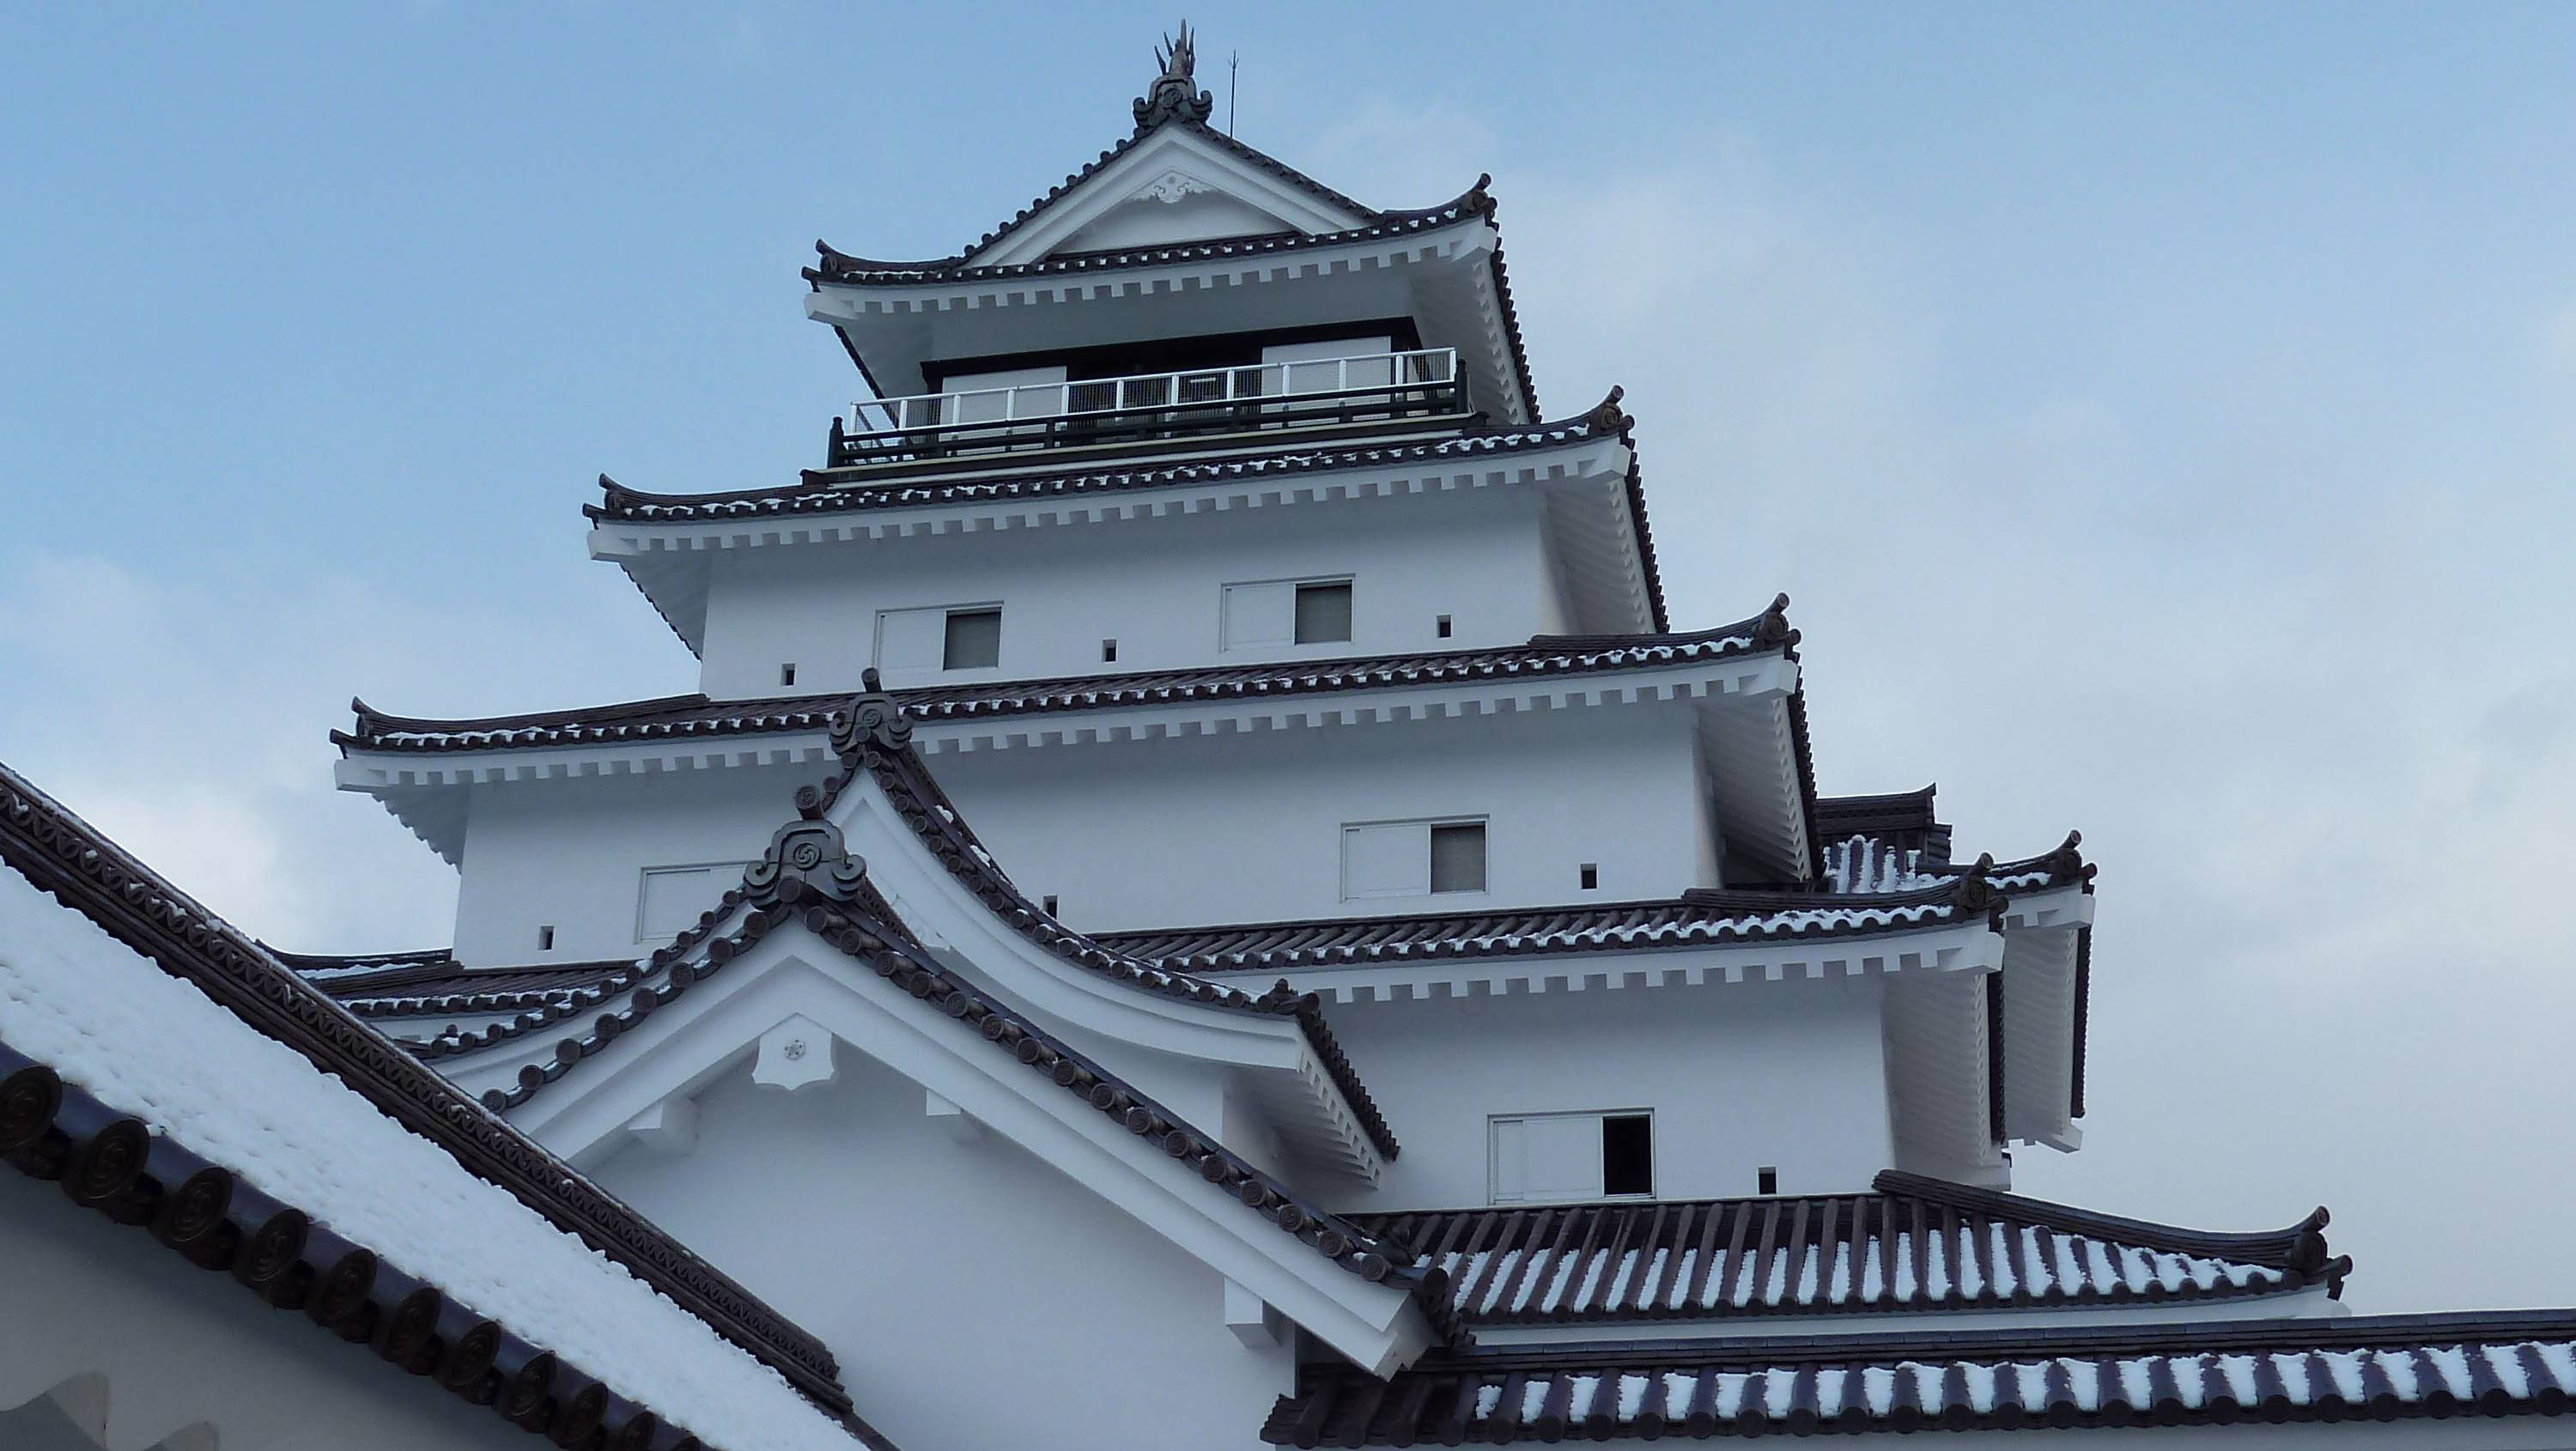 Seat of power: This replica of the Aizu clan's  Tsuruga-jo (Crane Castle), which fell to the Imperial Army in 1868, conveys a sense of the domain's might over which the seventh daimyo, Matsudaira Katamori had ruled until then. | LESLEY DOWNER PHOTOS